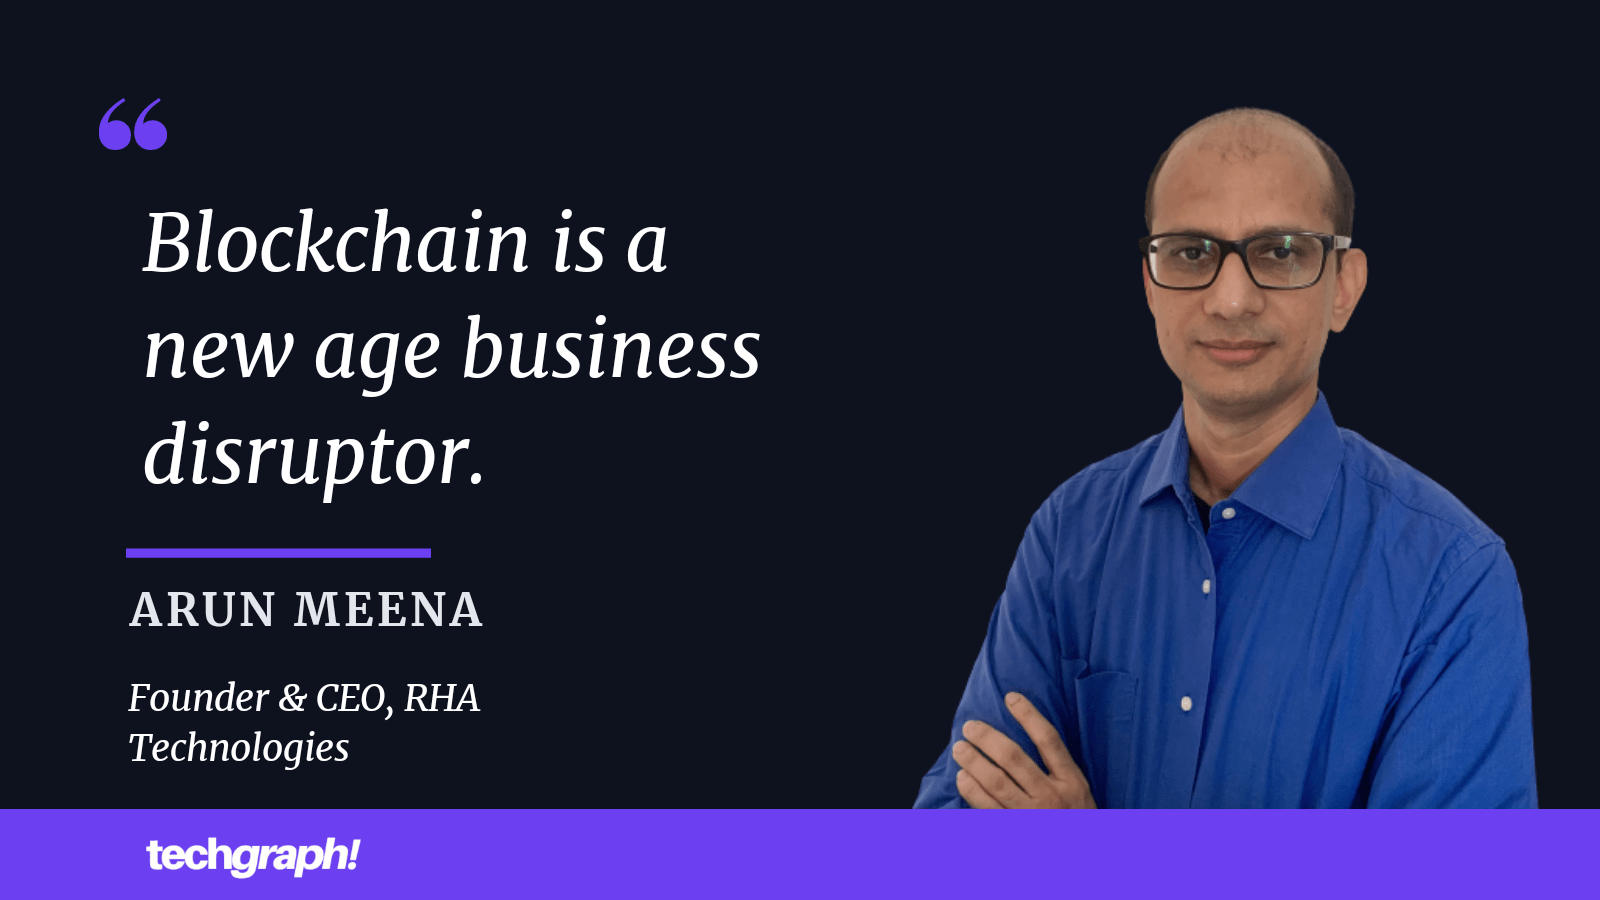 """Interview: """"Blockchain is a new age business disruptor,"""" Says Arun Meena of RHA Technologies"""